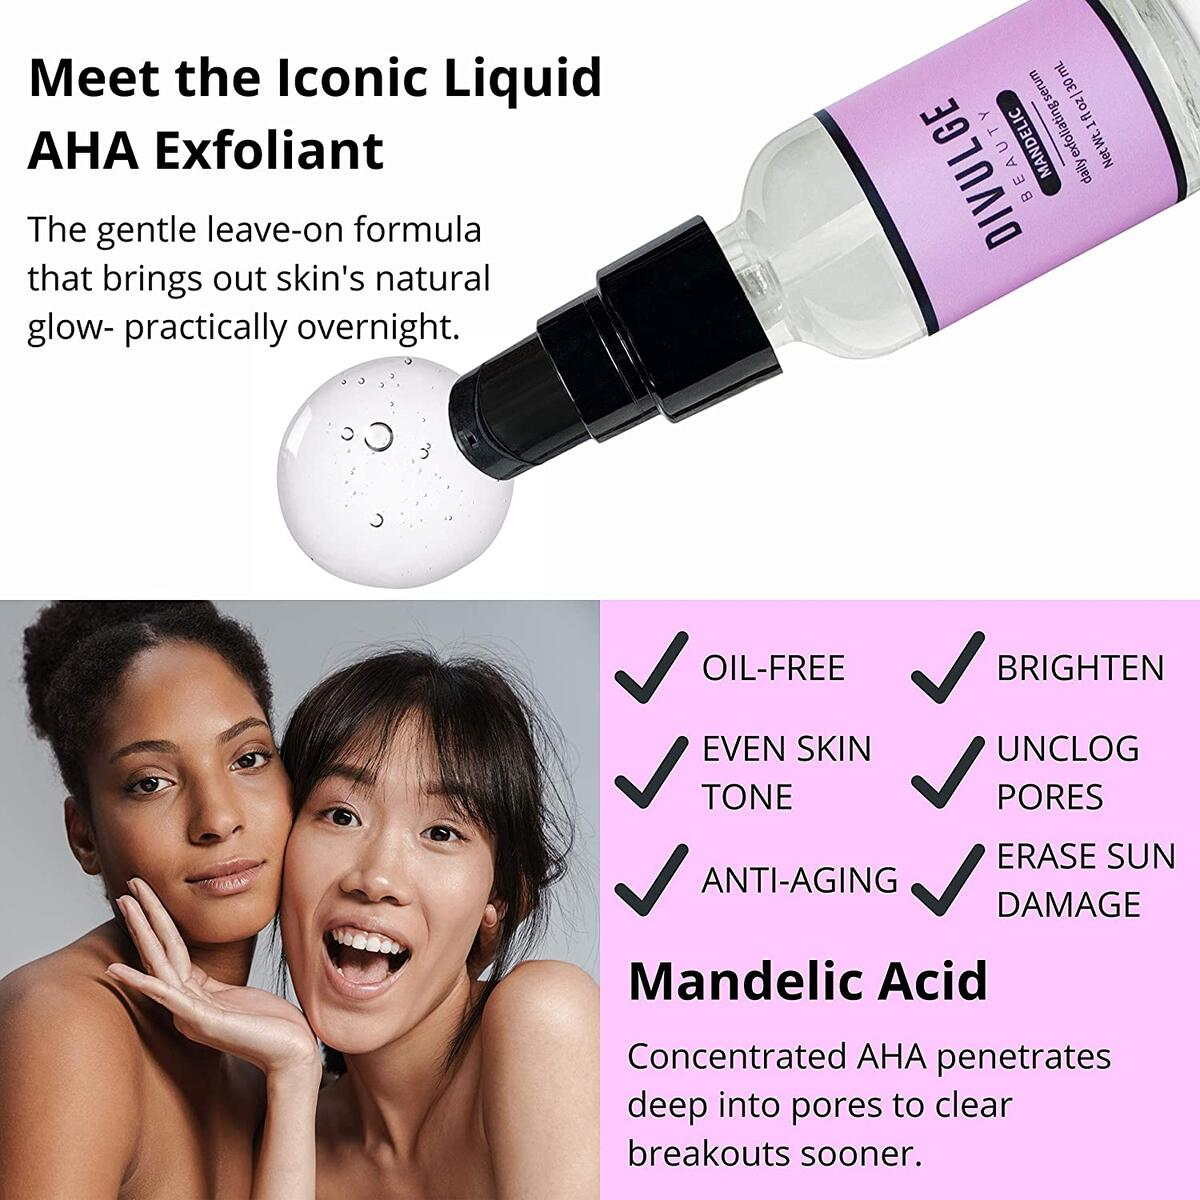 AHA Mandelic Acid Gel Daily Exfoliating Acne Scar Treatment Serum for Dark Spots, Hyperpigmentation, Cystic Hormonal Acne, Folliculitis for Face, Back, Thighs, Arms, Chest, Butt 1 oz - Divulge Beauty